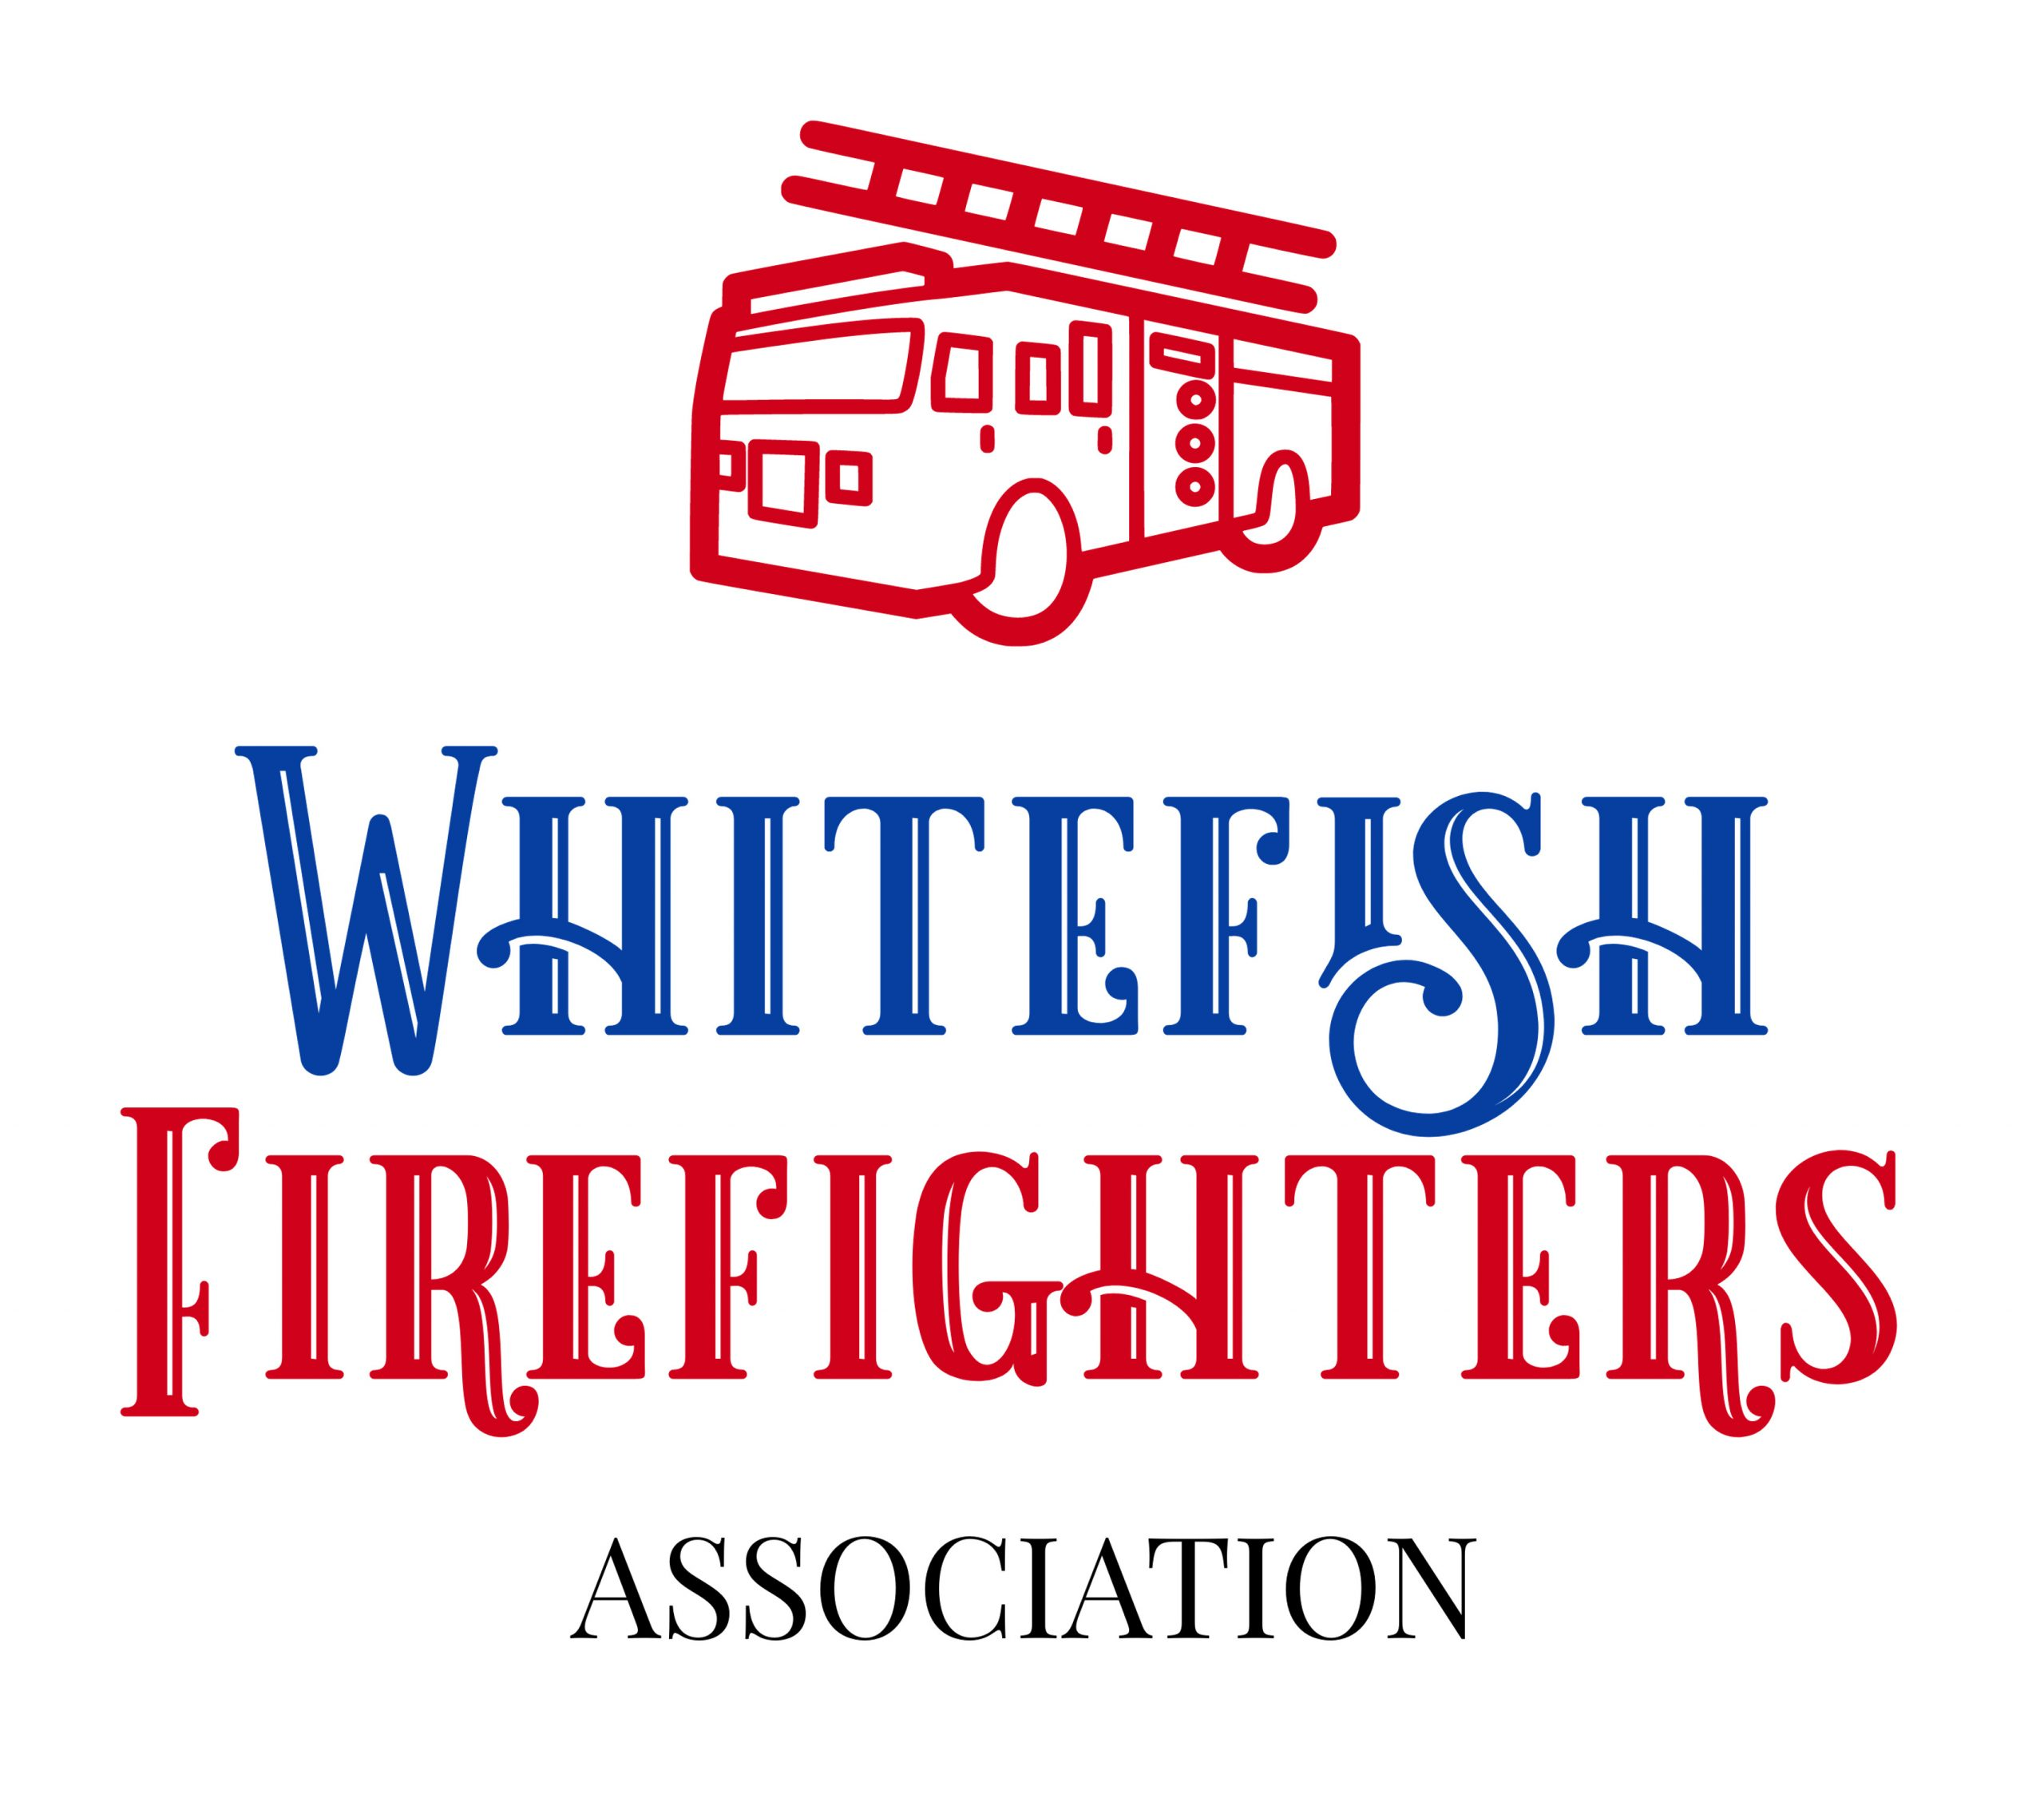 Whitefish Firefighters Association